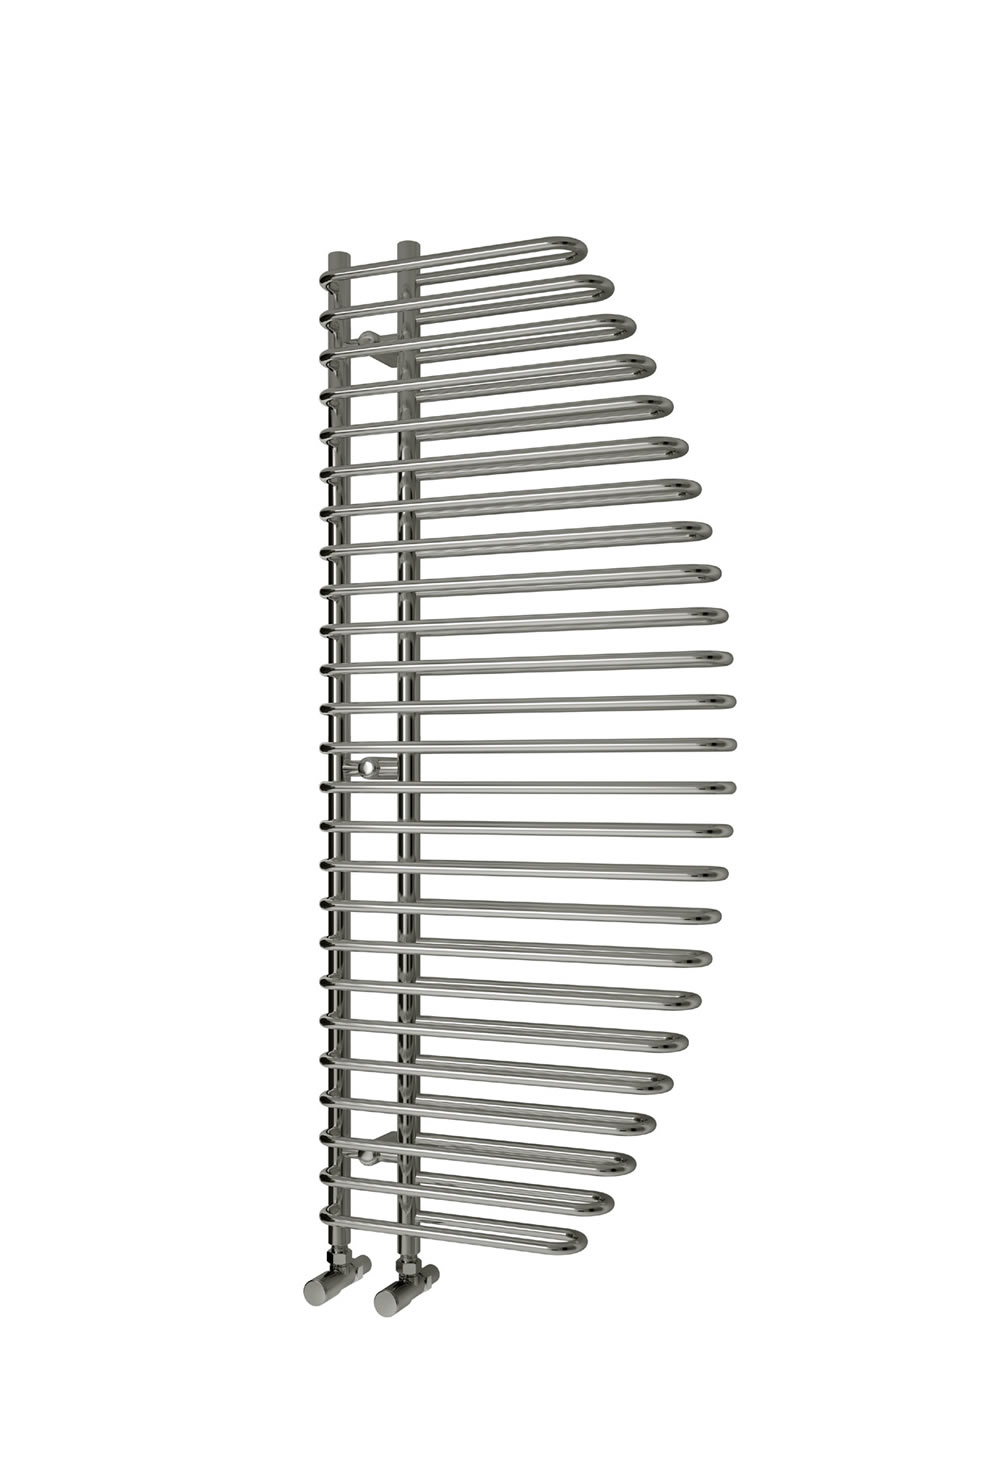 Reina Nola Steel Contemporary Vertical Bathroom Towel Rail and Radiator